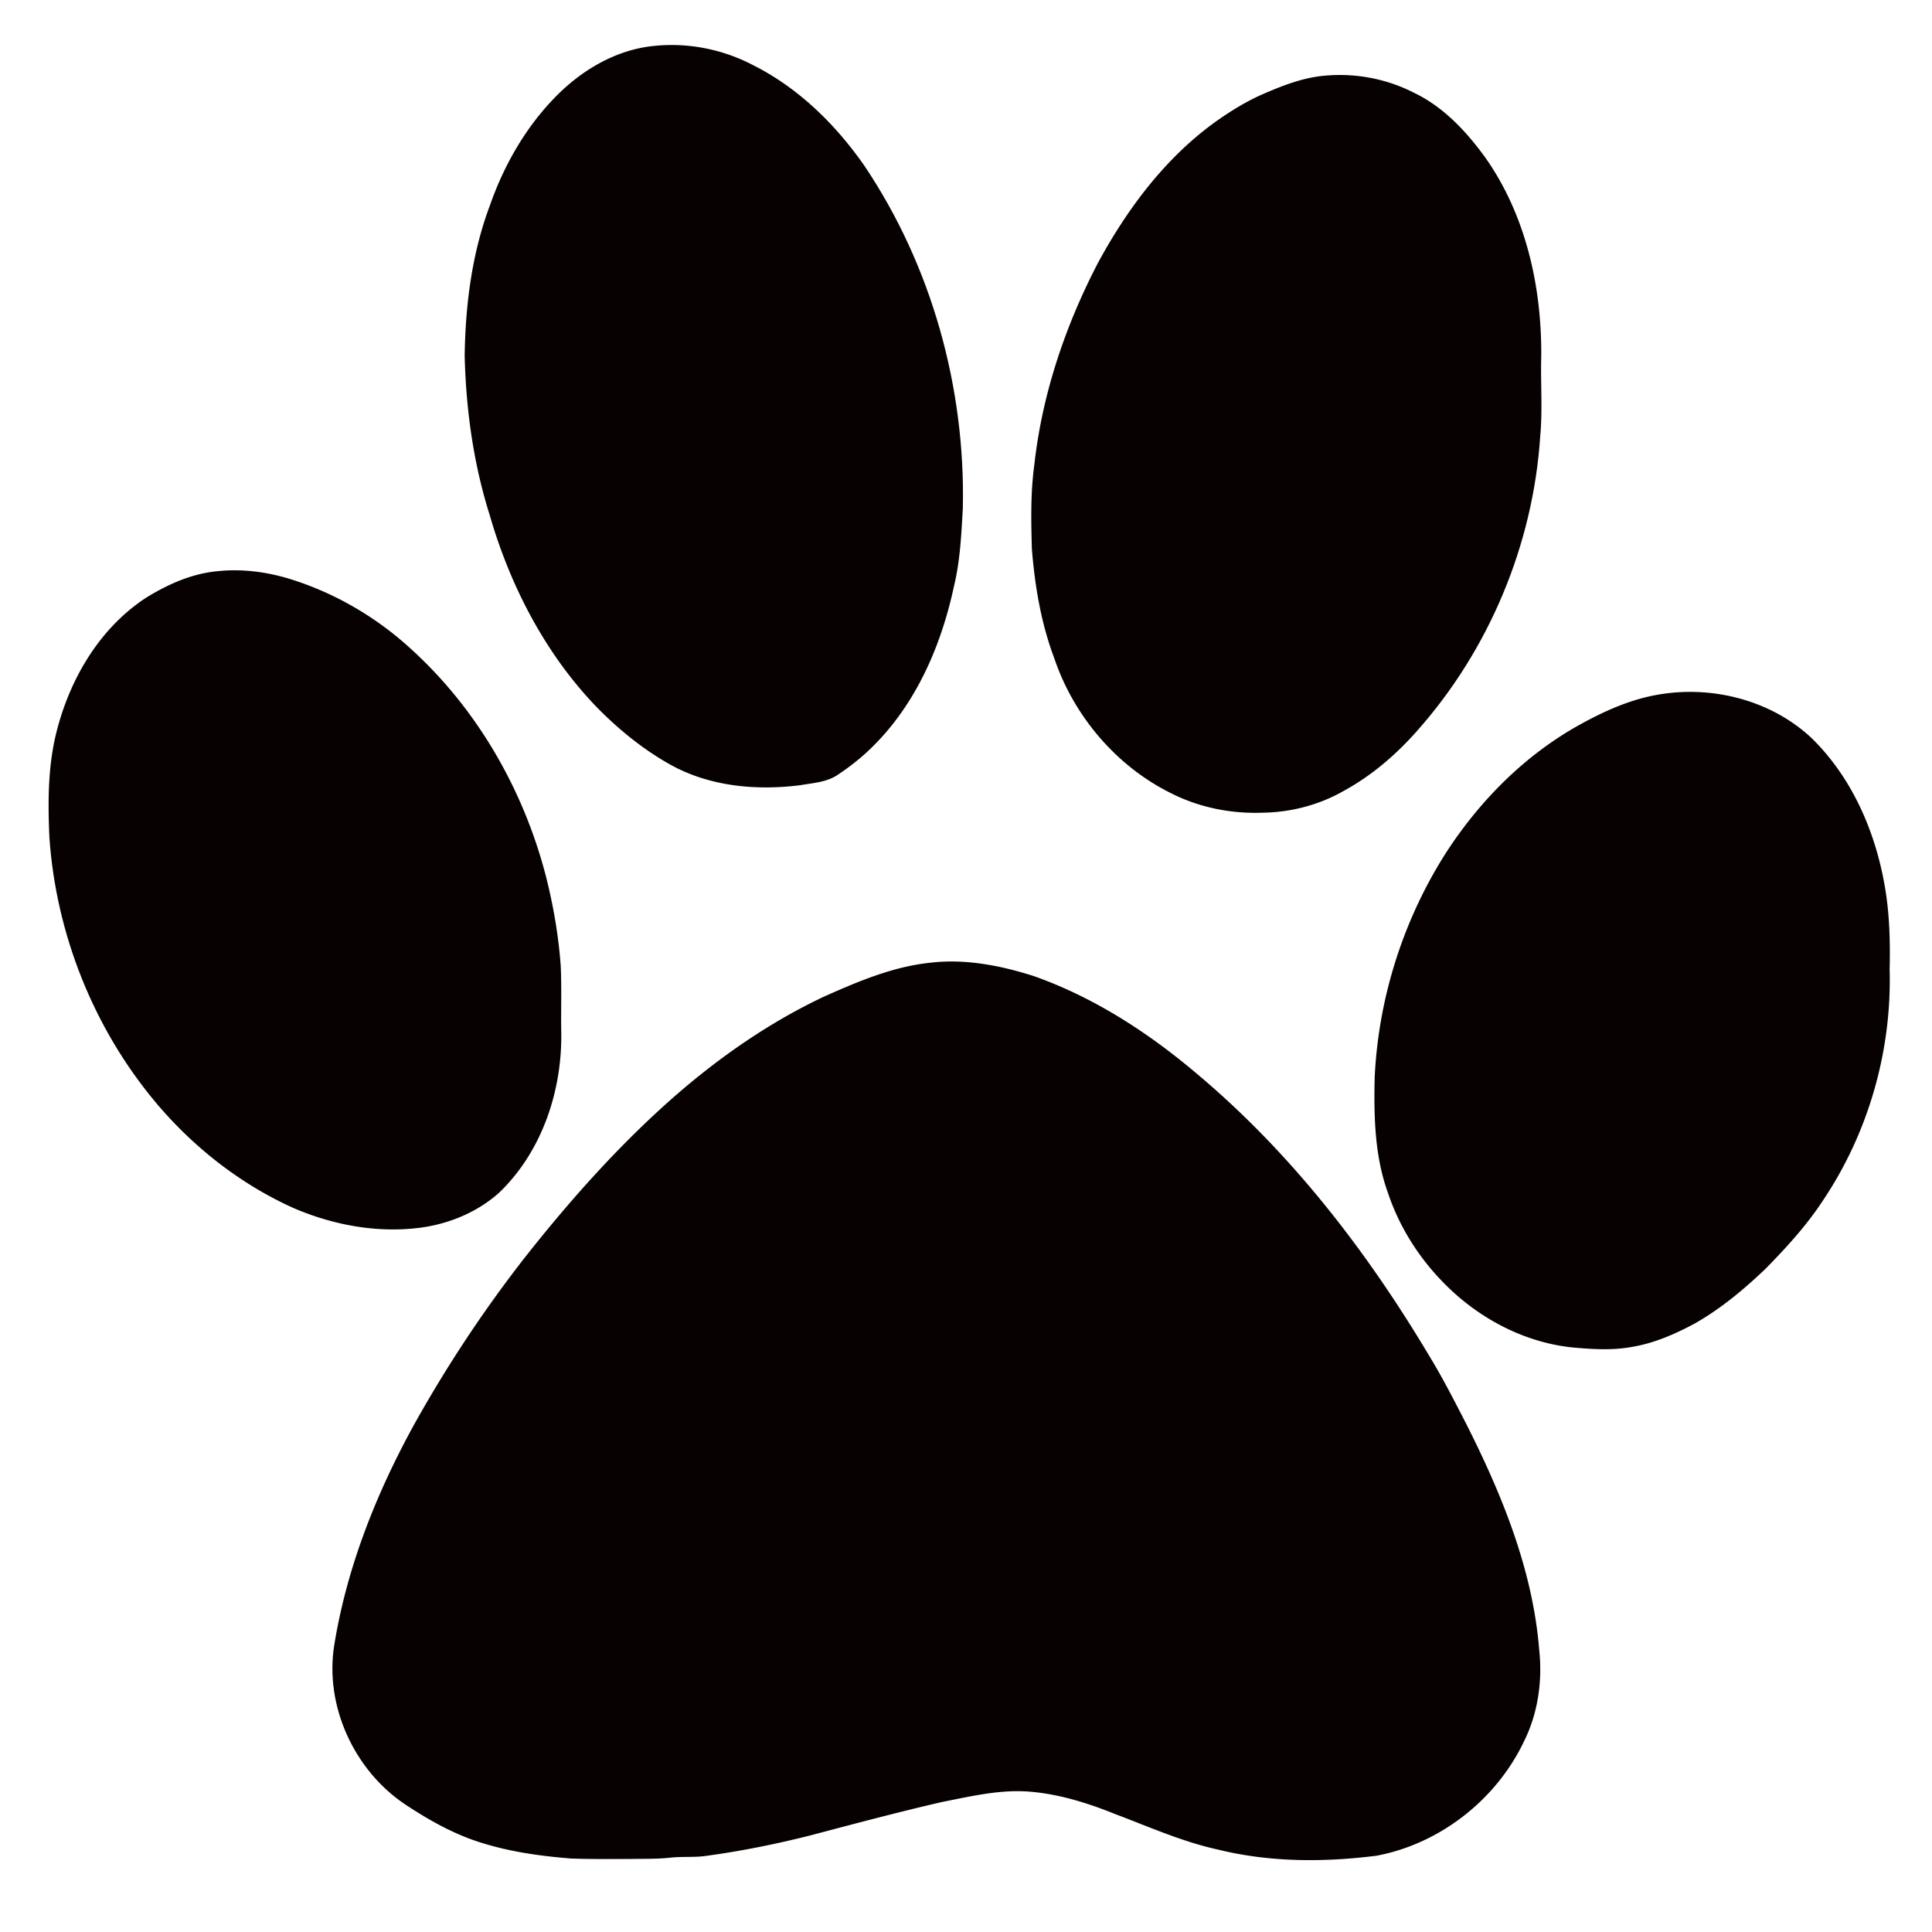 Paw Print Clipart & Paw Print Clip Art Images.